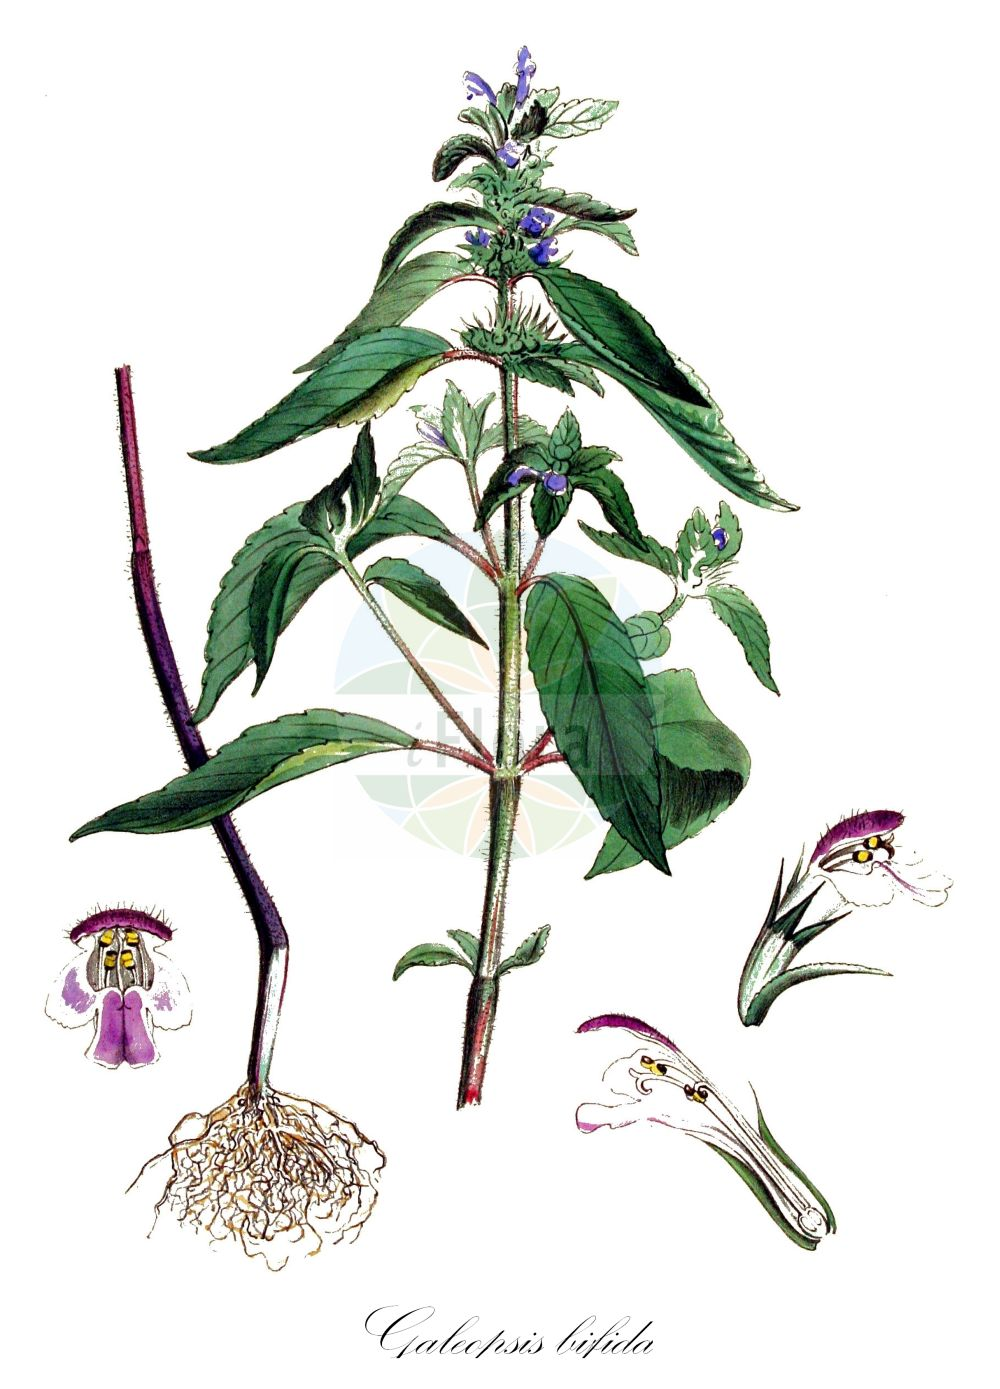 Historische Abbildung von Galeopsis bifida (Zweispaltiger Hohlzahn - Bifid Hemp-nettle). Das Bild zeigt Blatt, Bluete, Frucht und Same. ---- Historical Drawing of Galeopsis bifida (Zweispaltiger Hohlzahn - Bifid Hemp-nettle).The image is showing leaf, flower, fruit and seed.(Galeopsis bifida,Zweispaltiger Hohlzahn,Bifid Hemp-nettle,Galeopsis pallens,Galeopsis pernkofferi,Galeopsis tetrahit var. bifida,Kleinbluetiger Hohlzahn,Zweizipfeliger Hohlzahn,Splitlip Hempnettle,Galeopsis,Hohlzahn,Hempnettle,Lamiaceae,Lippenbluetengewaechse;Lippenbluetler,Nettle family,Blatt,Bluete,Frucht,Same,leaf,flower,fruit,seed,Kops (1800-1934))